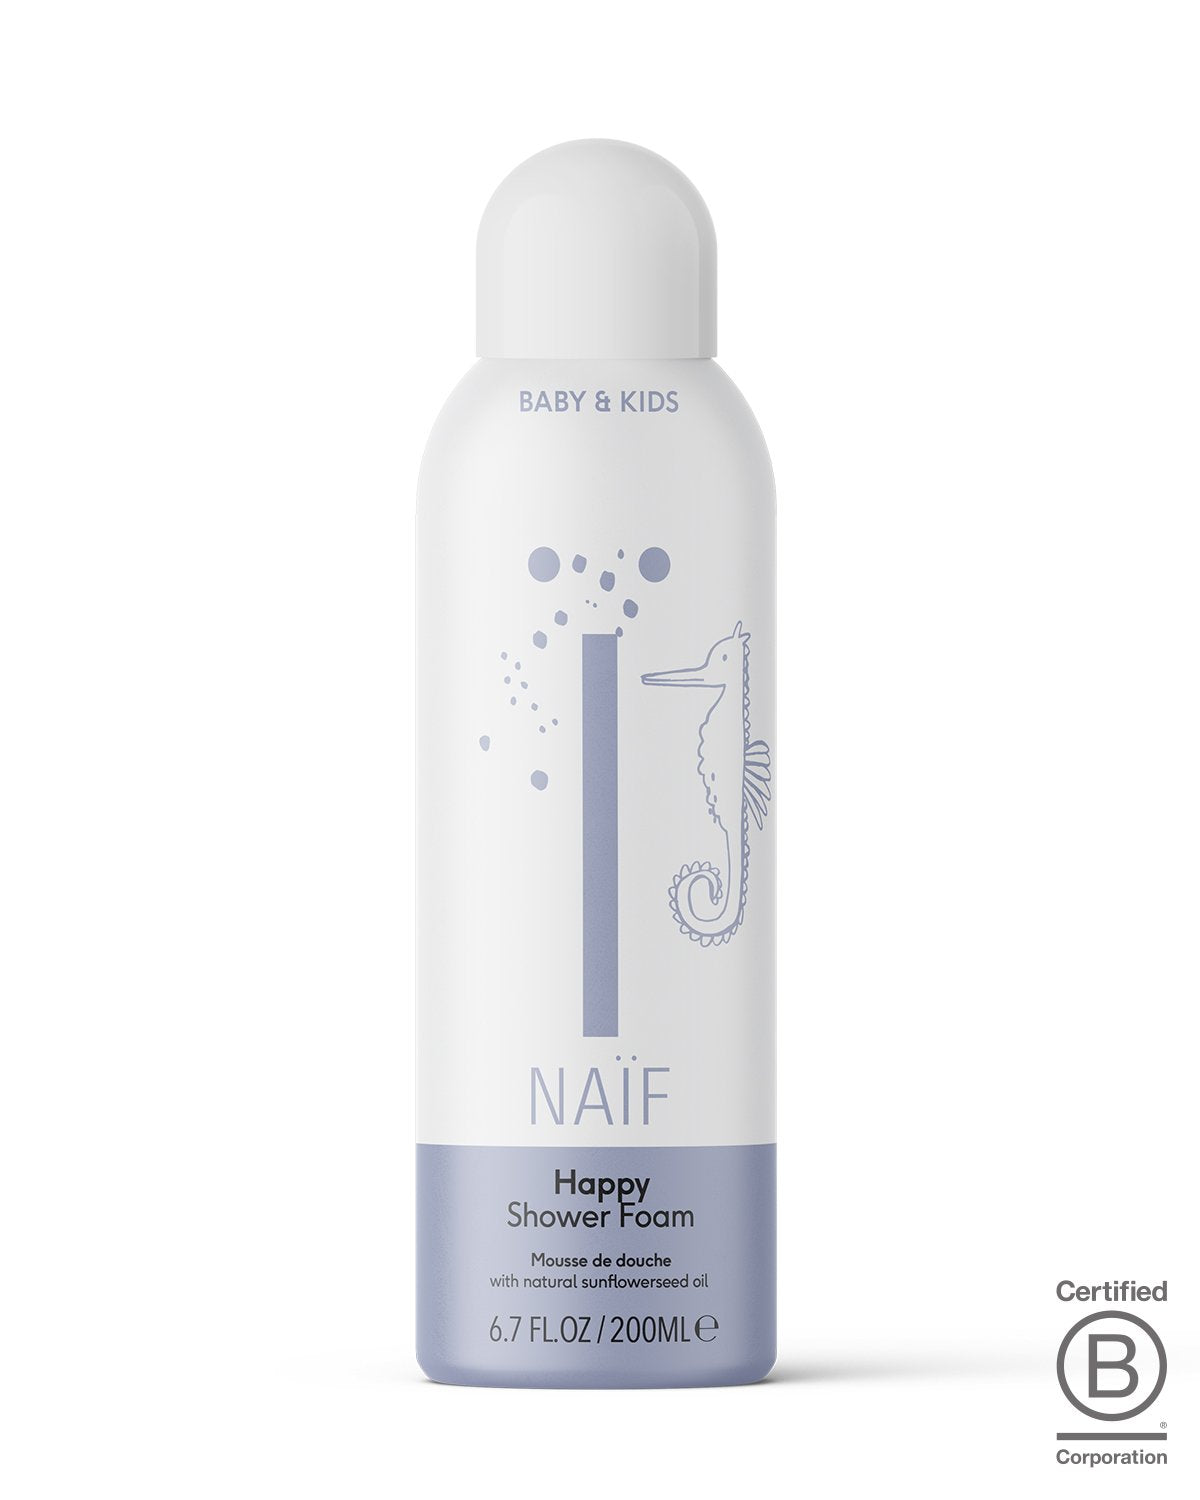 Naif Baby + Kids BATH BUNDLE